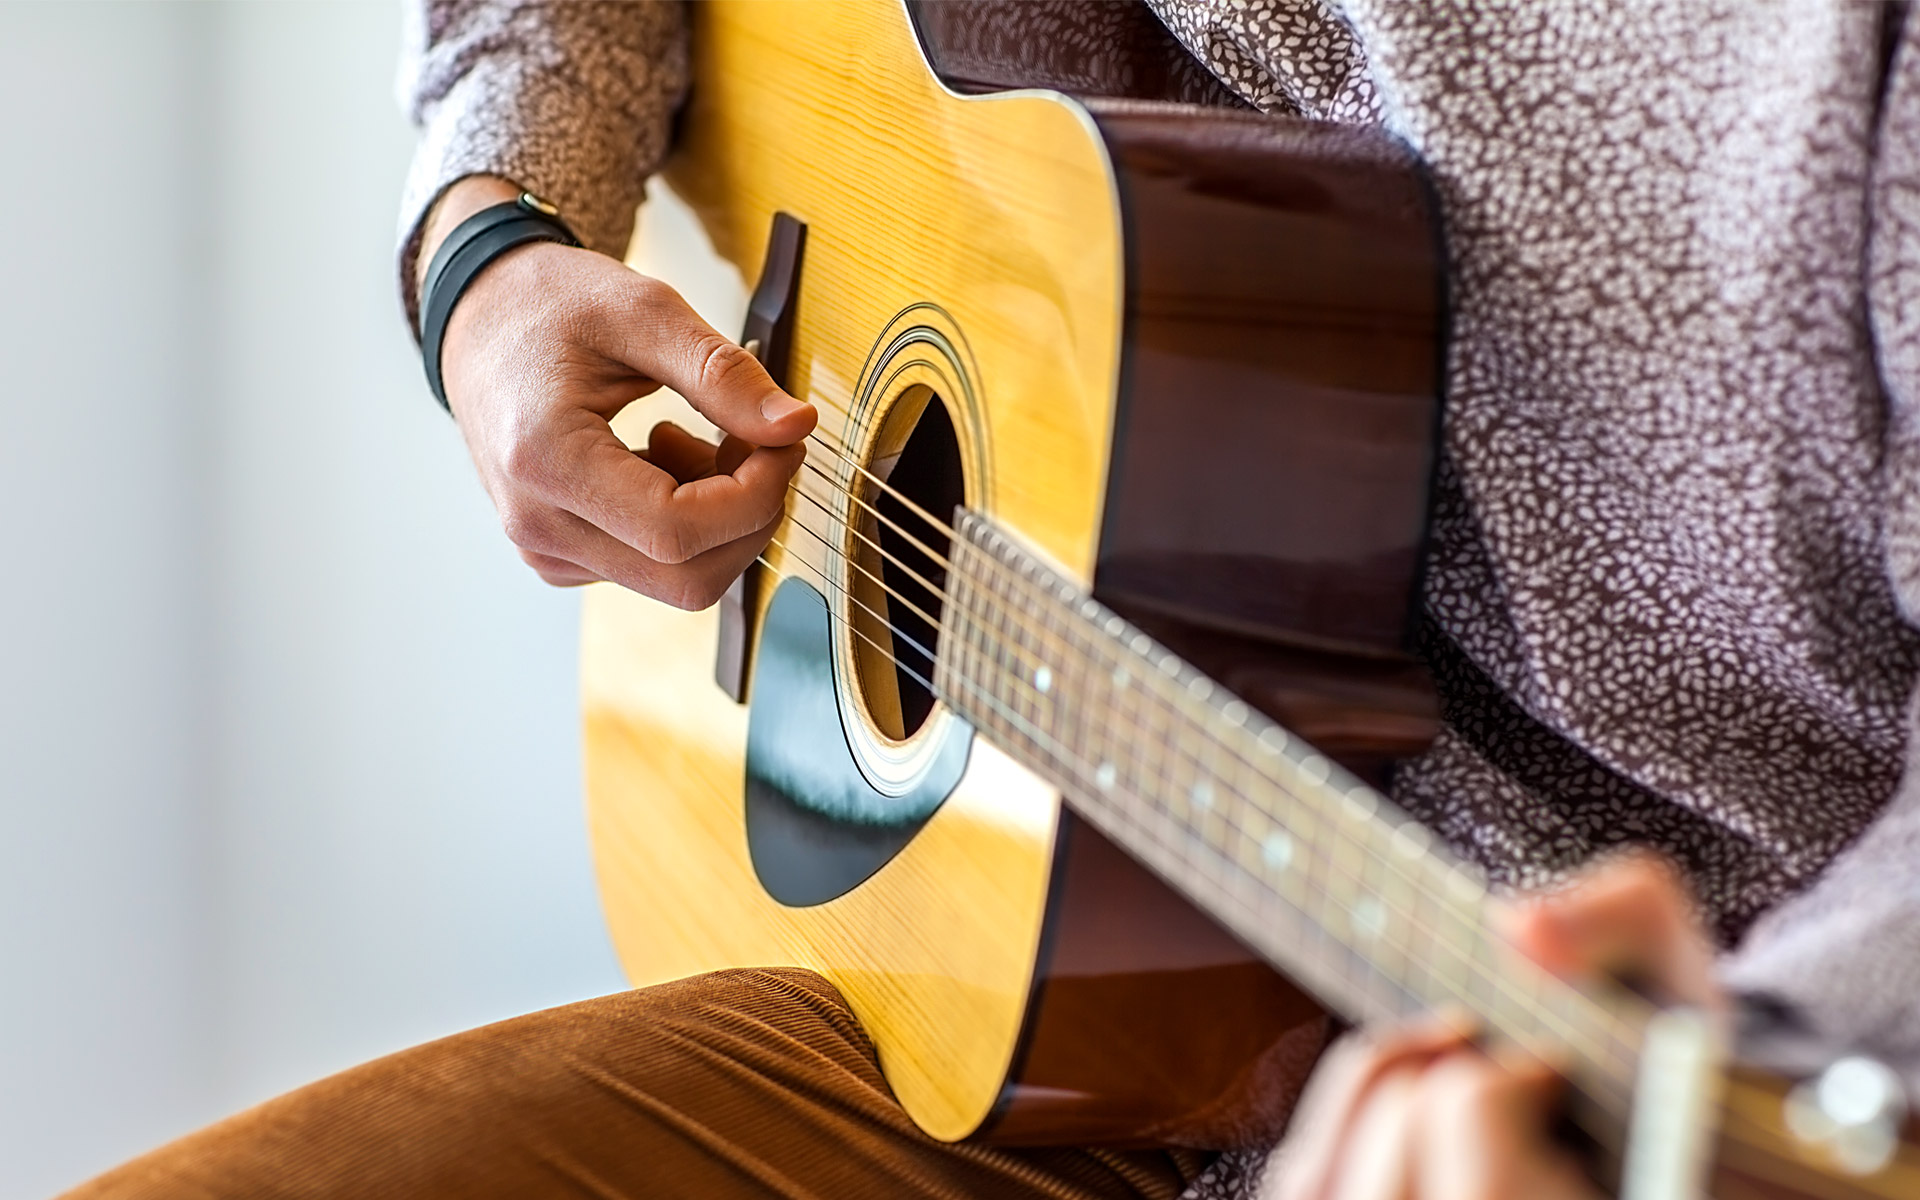 A person playing acoustic guitar.